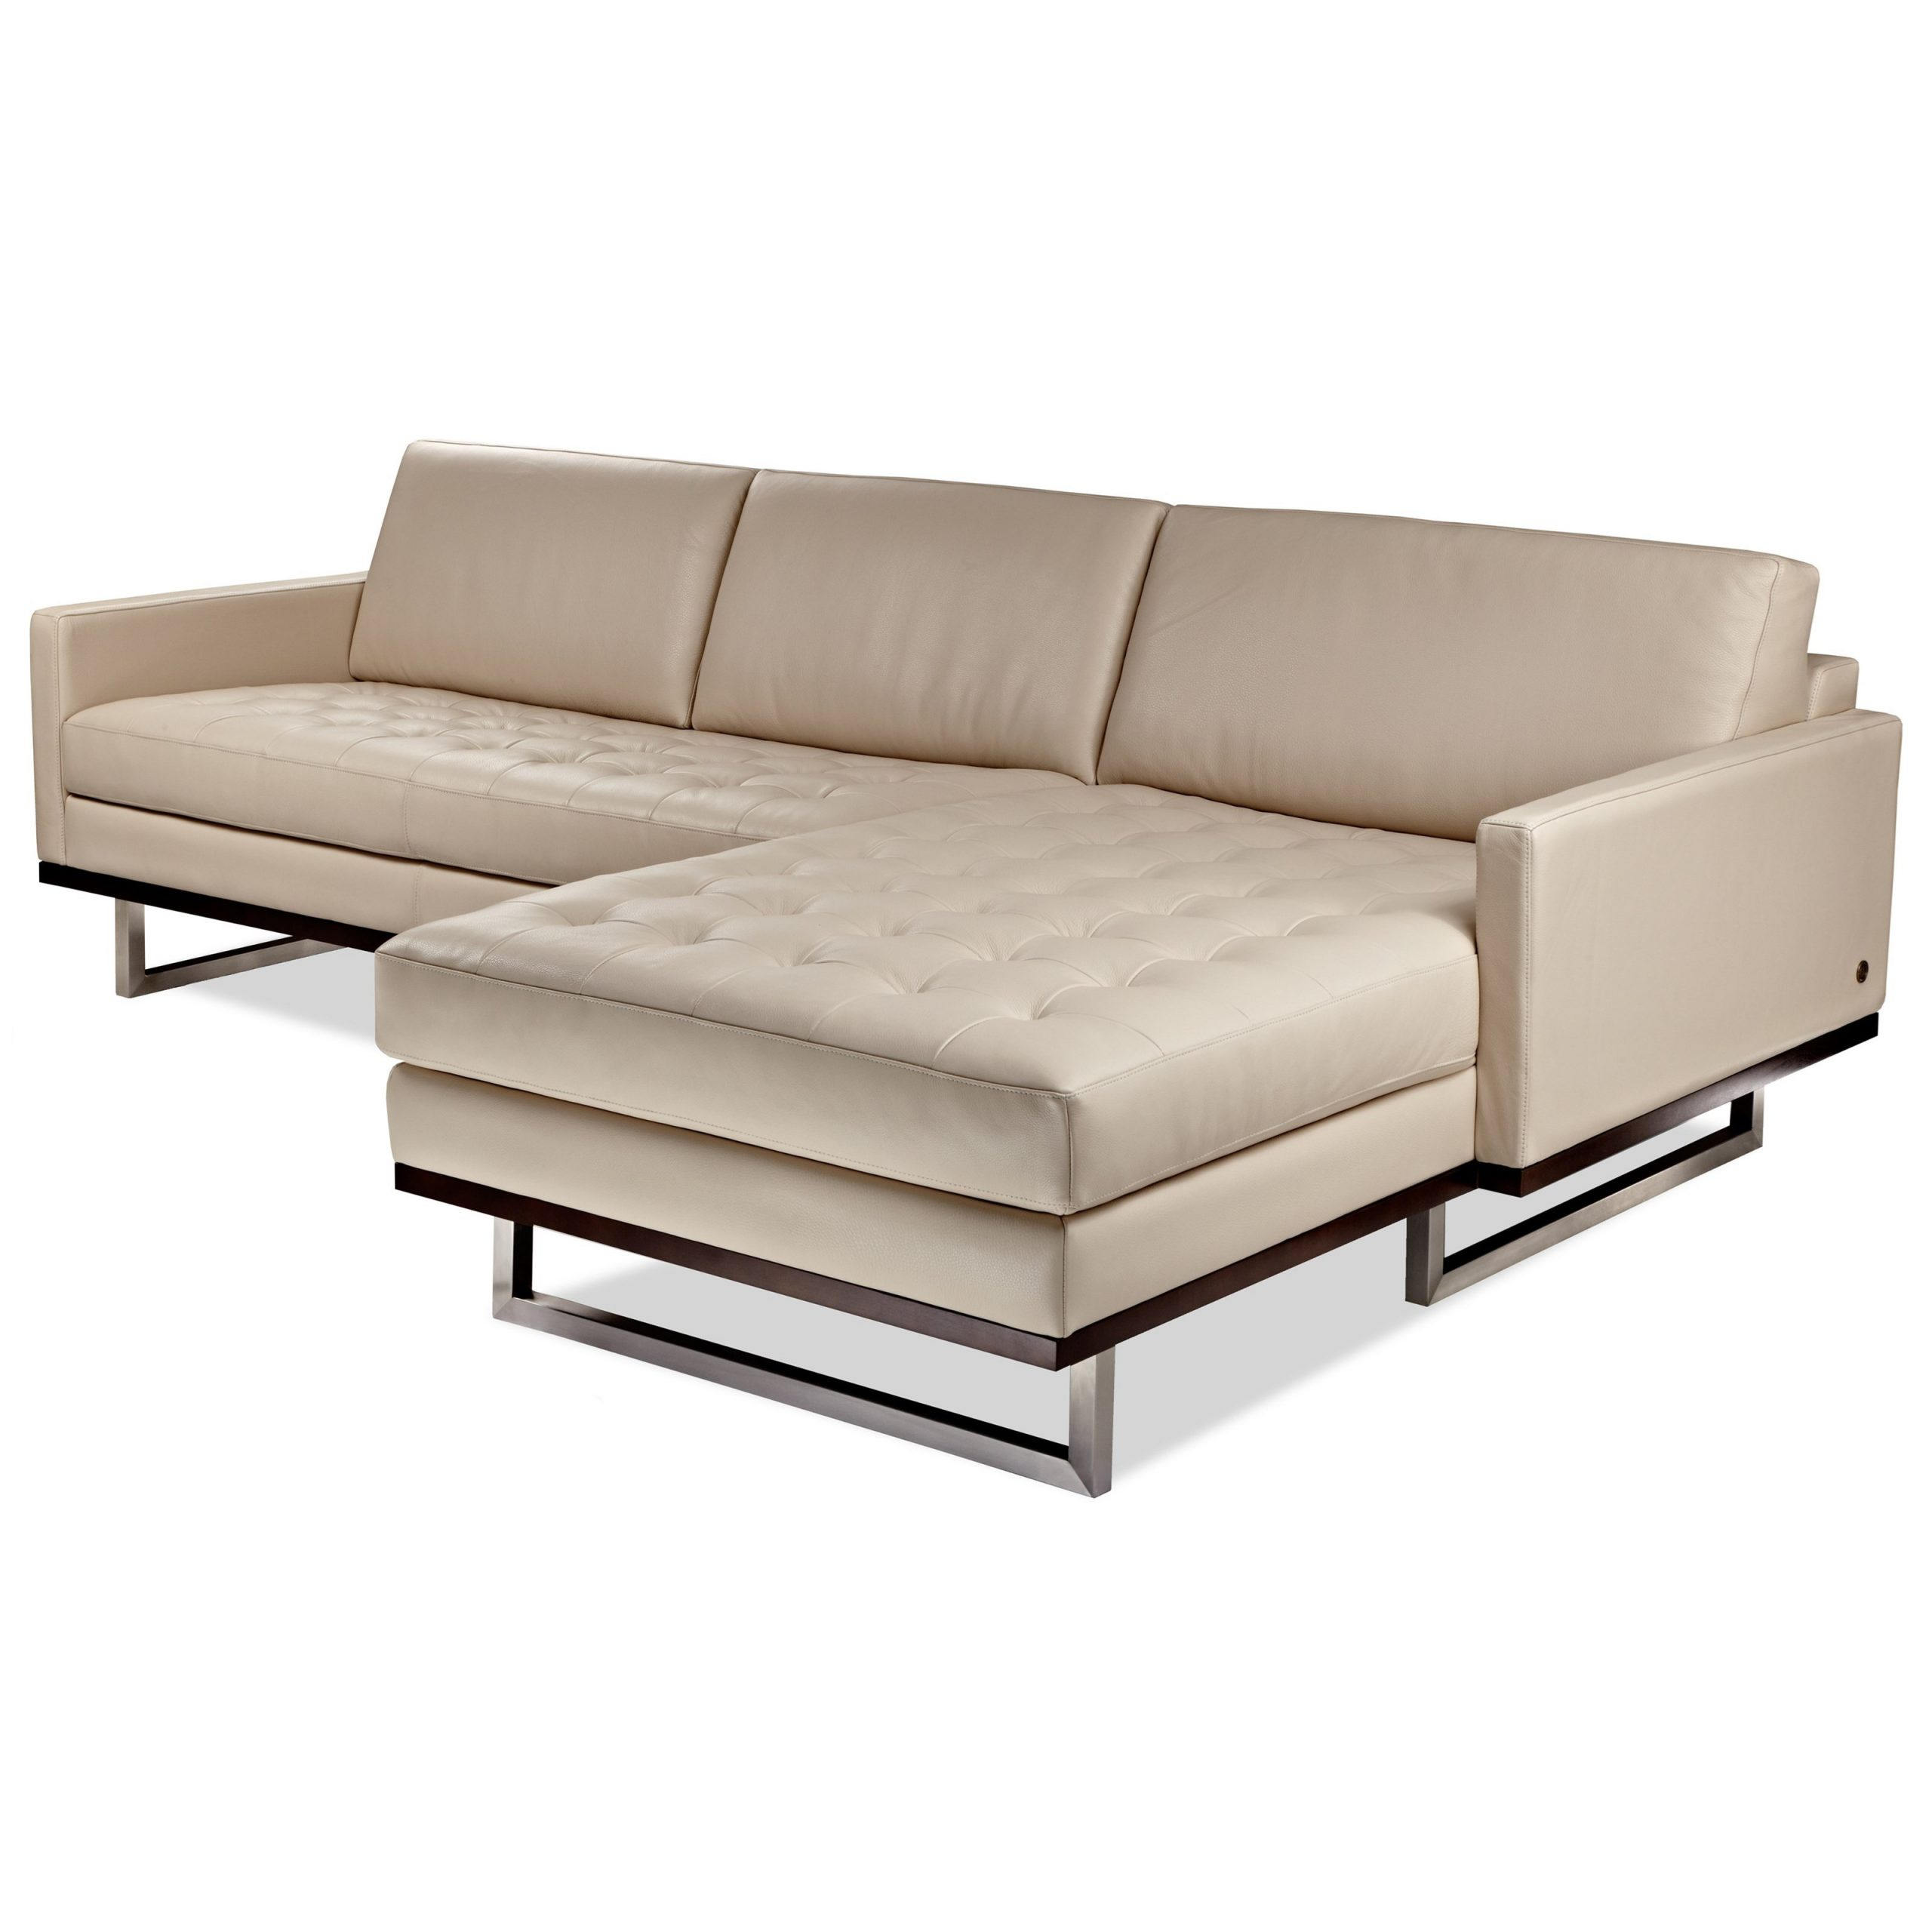 American Leather Tristan Mid Century Modern 2 Piece Within Evan 2 Piece Sectionals With Raf Chaise (View 12 of 15)